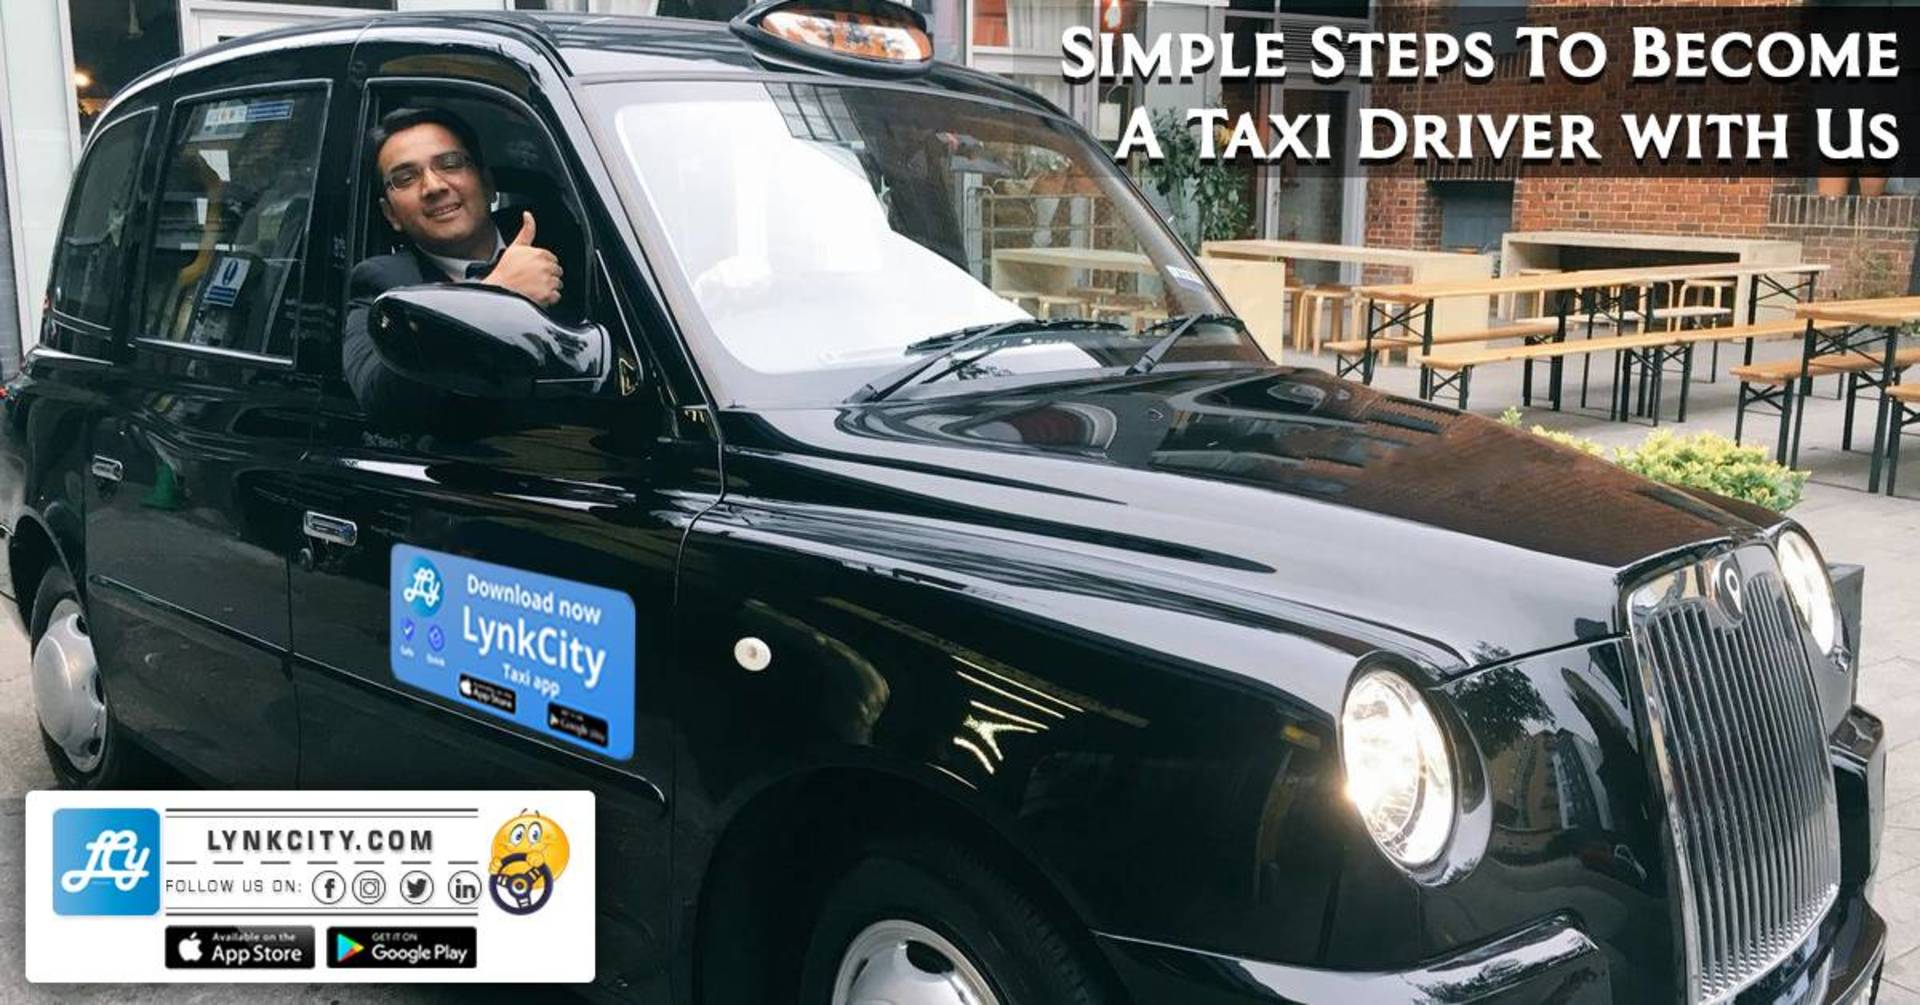 Simple Steps to Become a Taxi Driver with Us image